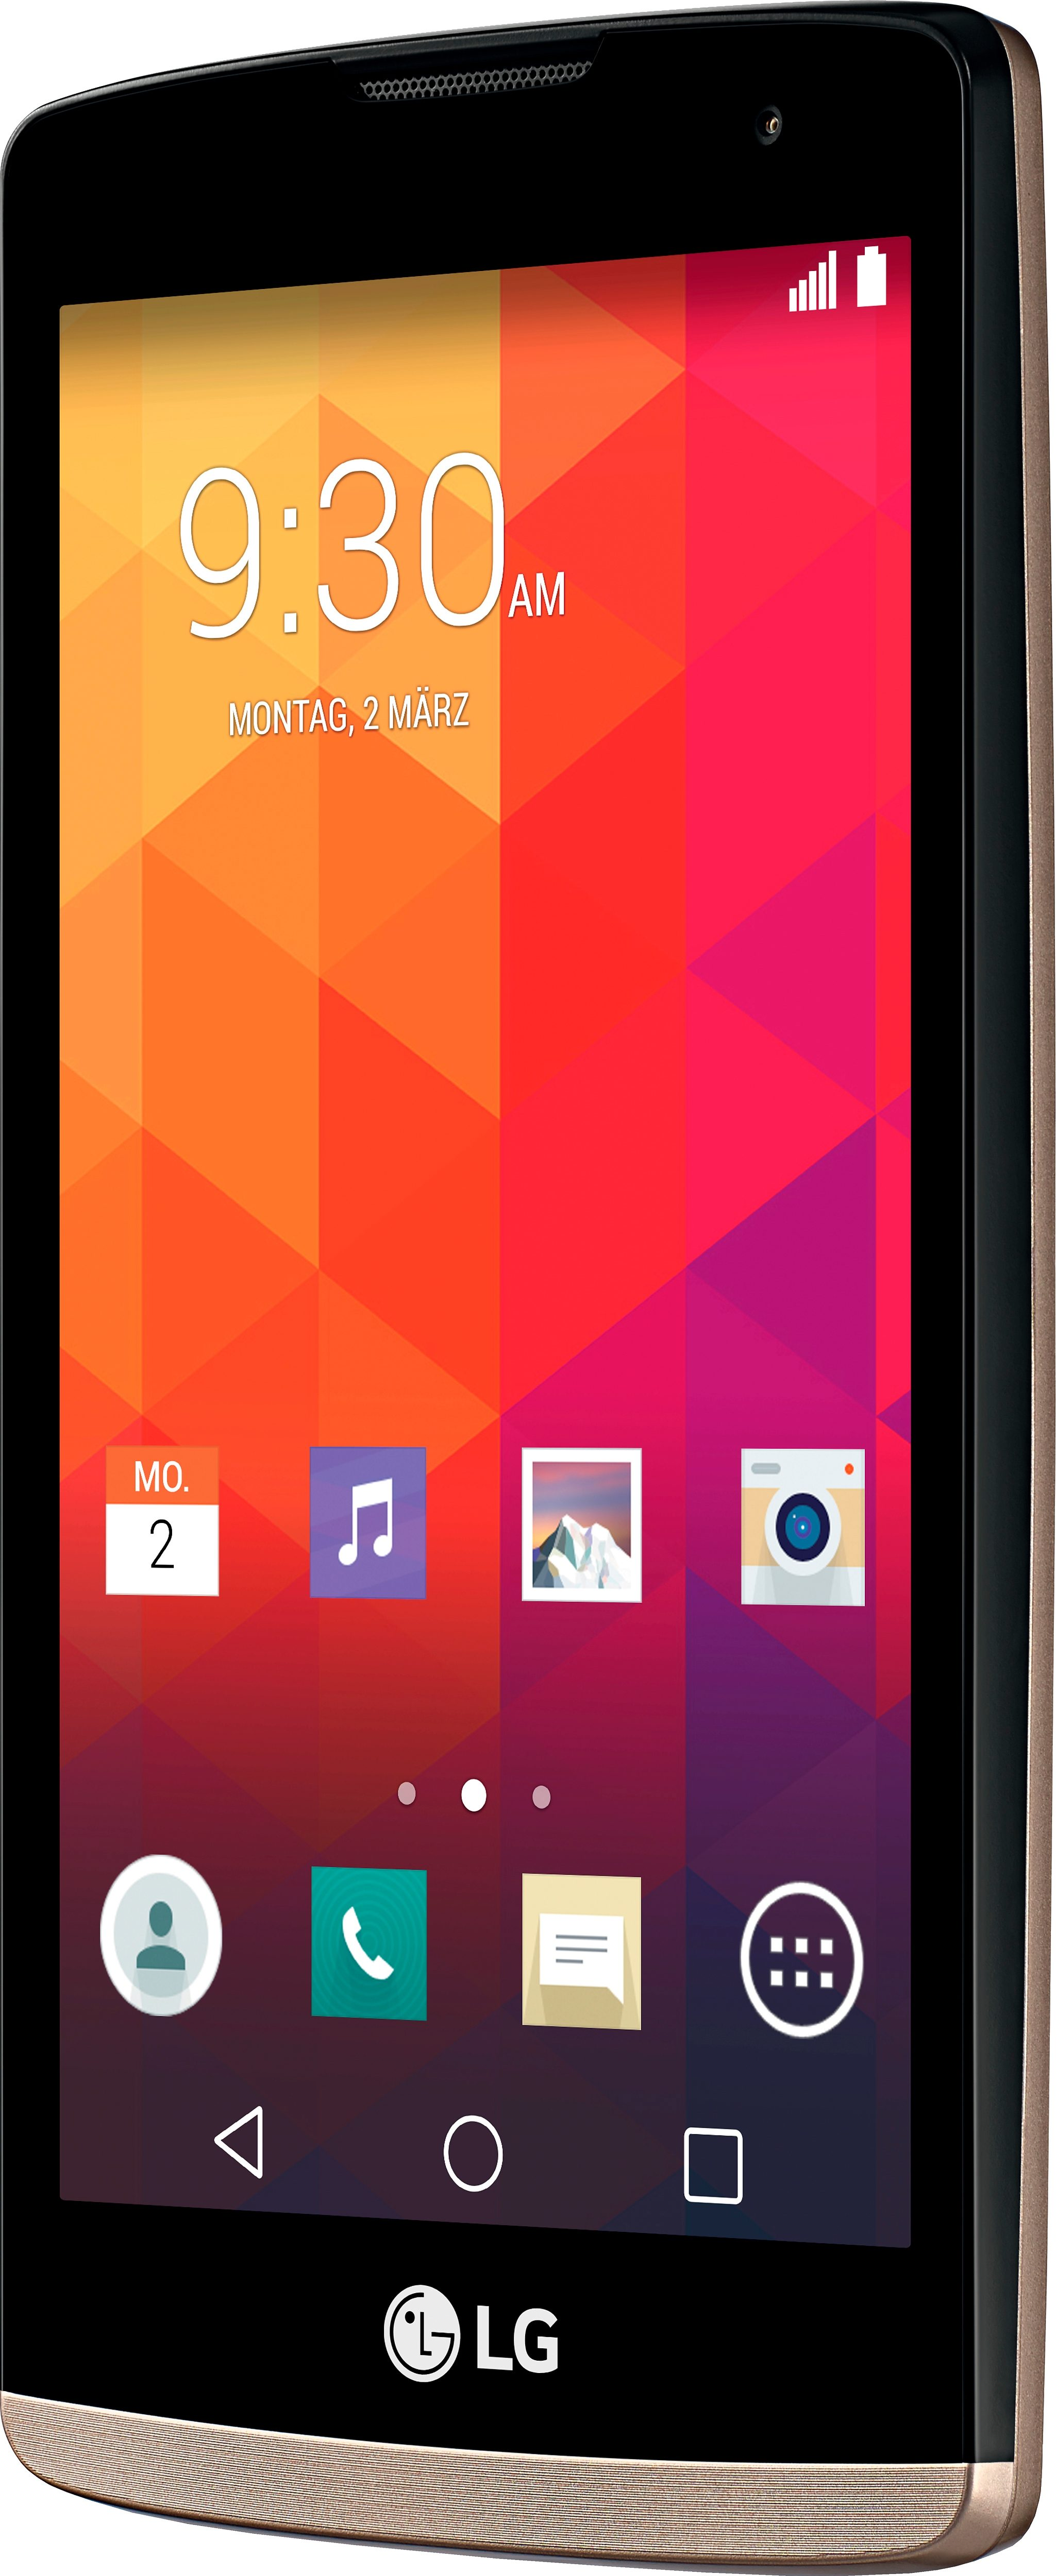 LG Leon LTE Smartphone, 11,4 cm (4,5 Zoll) Display, LTE (4G), Android 5.0, 5,0 Megapixel, NFC